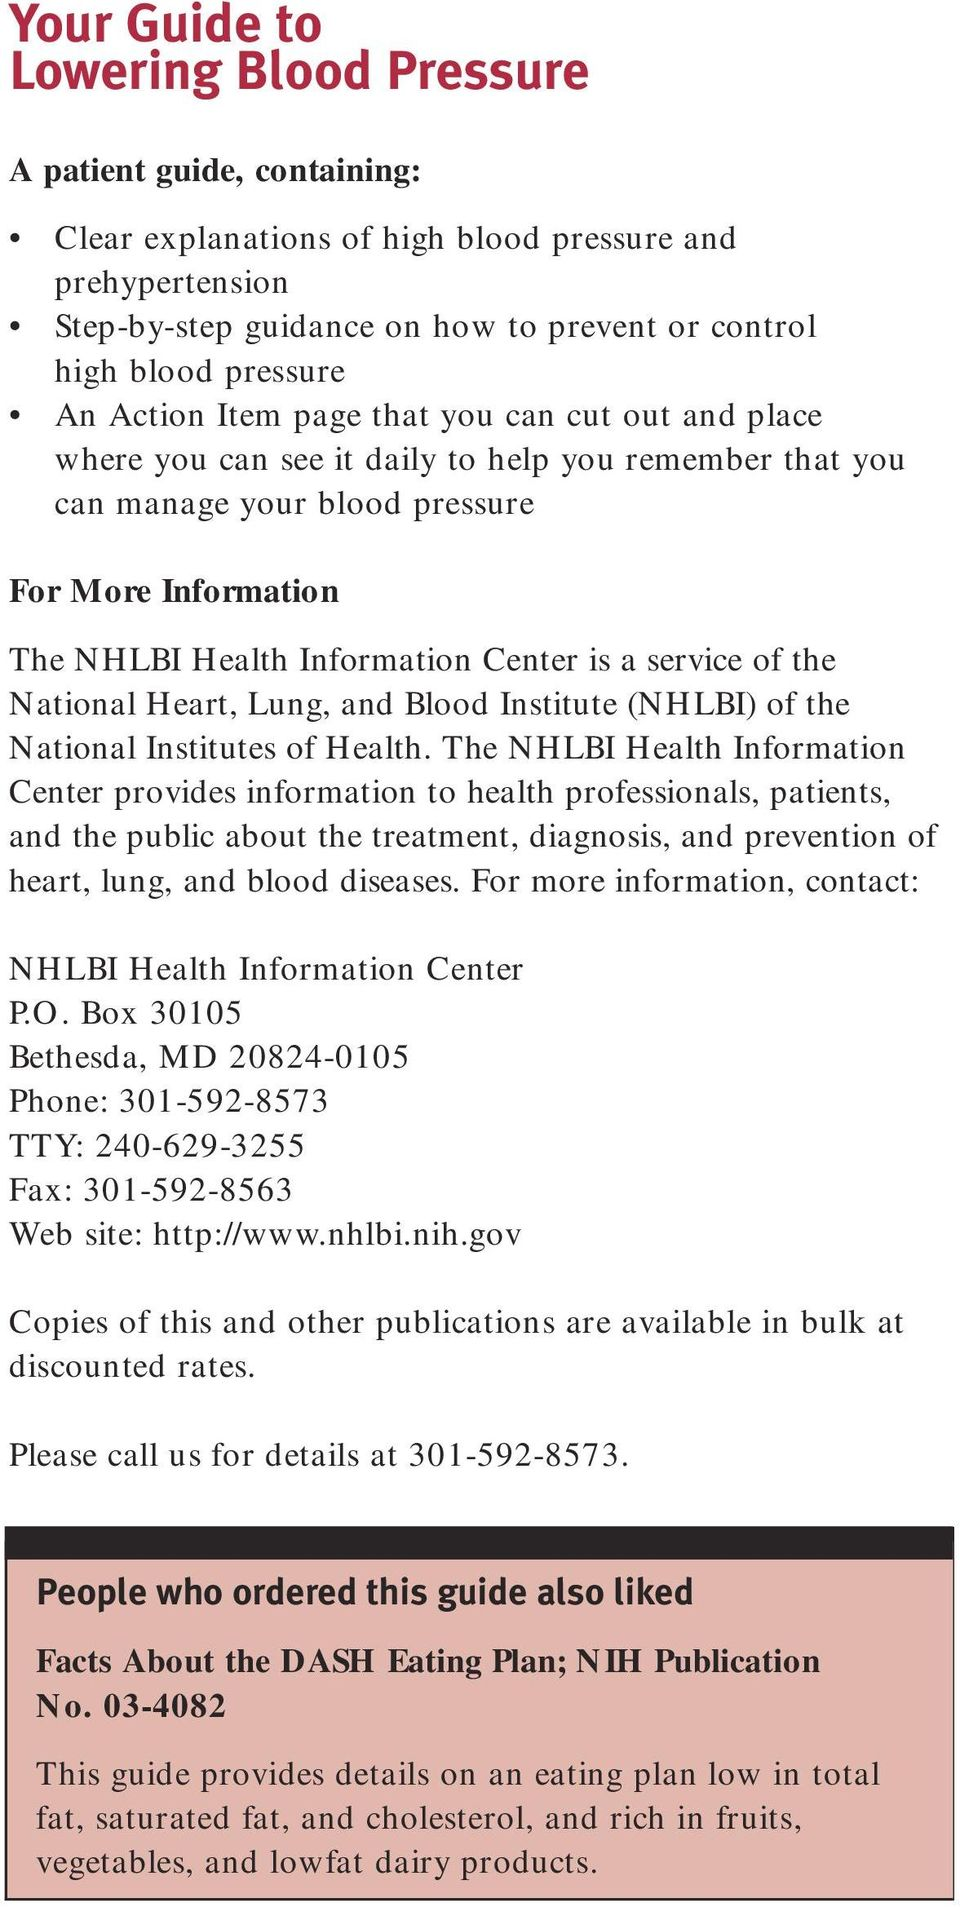 a service of the National Heart, Lung, and Blood Institute (NHLBI) of the National Institutes of Health.